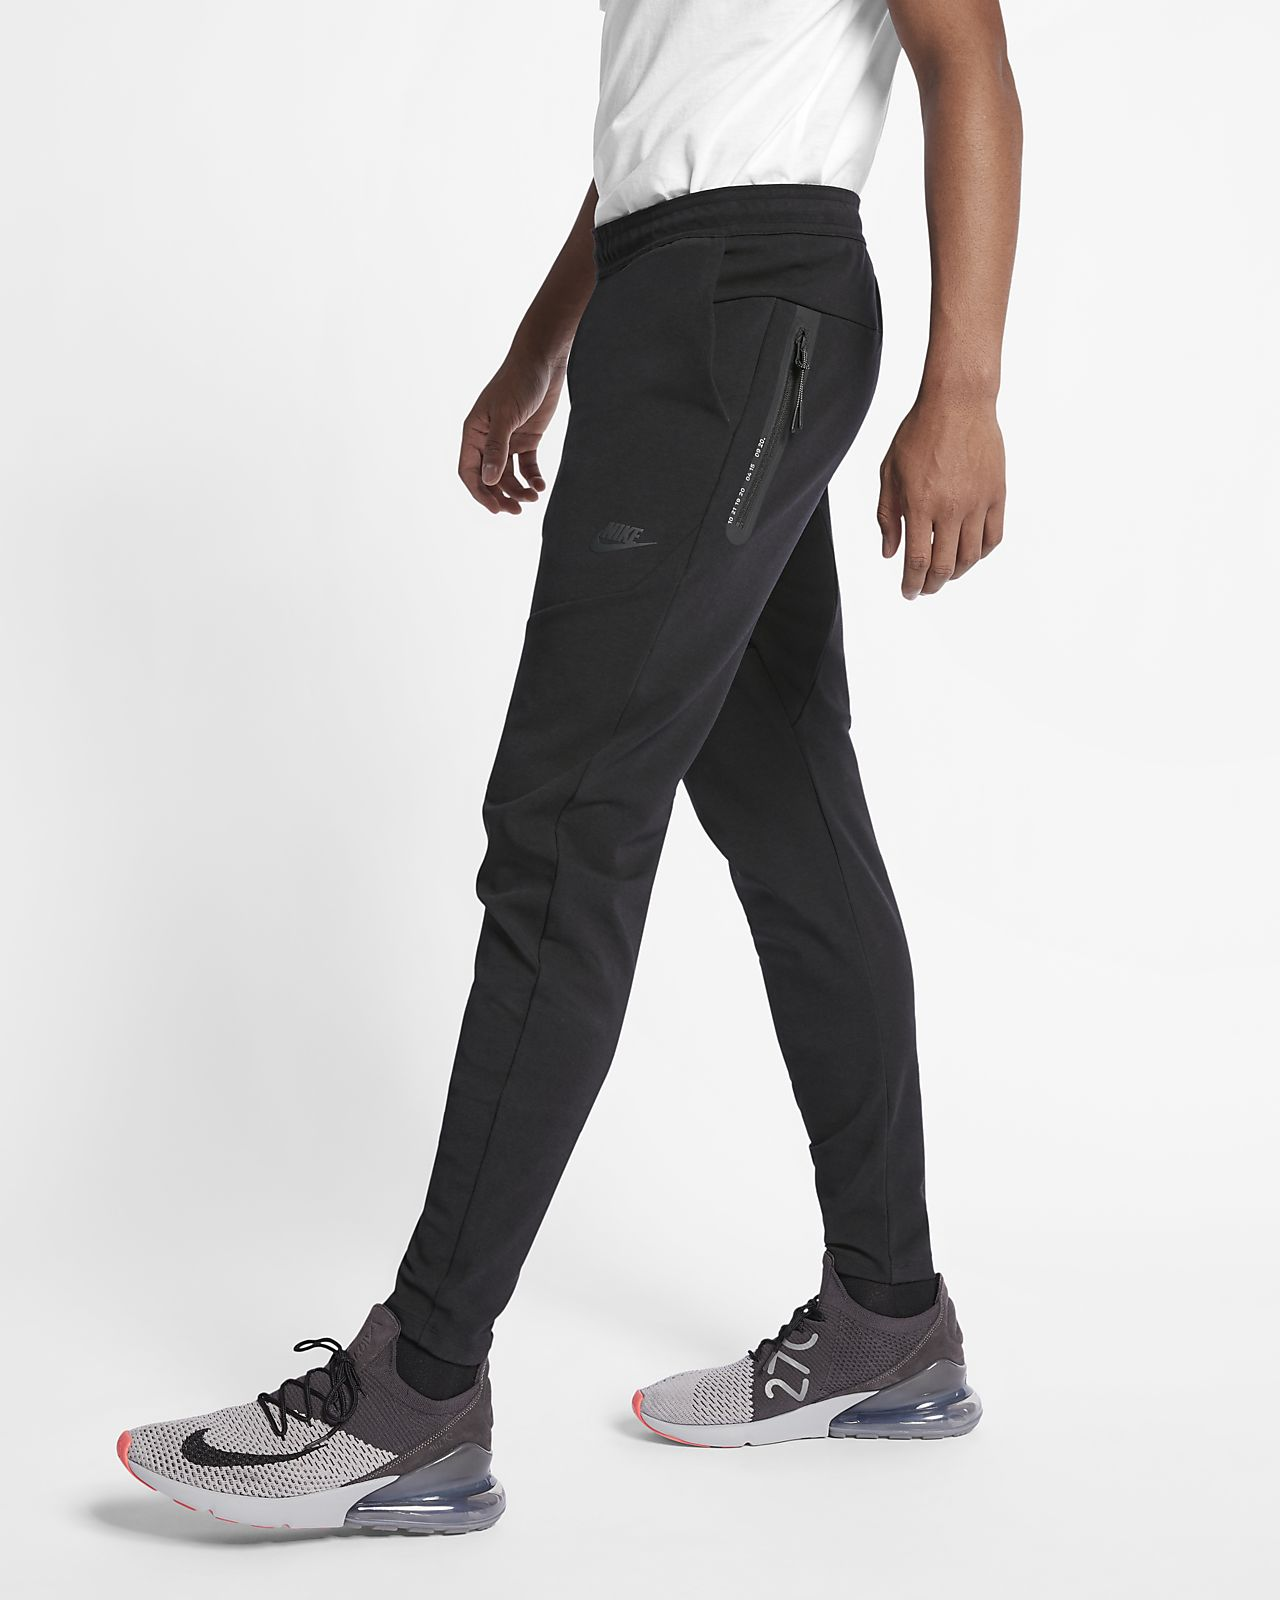 special for shoe special for shoe classic fit Nike Sportswear Tech Pack Herrenhose